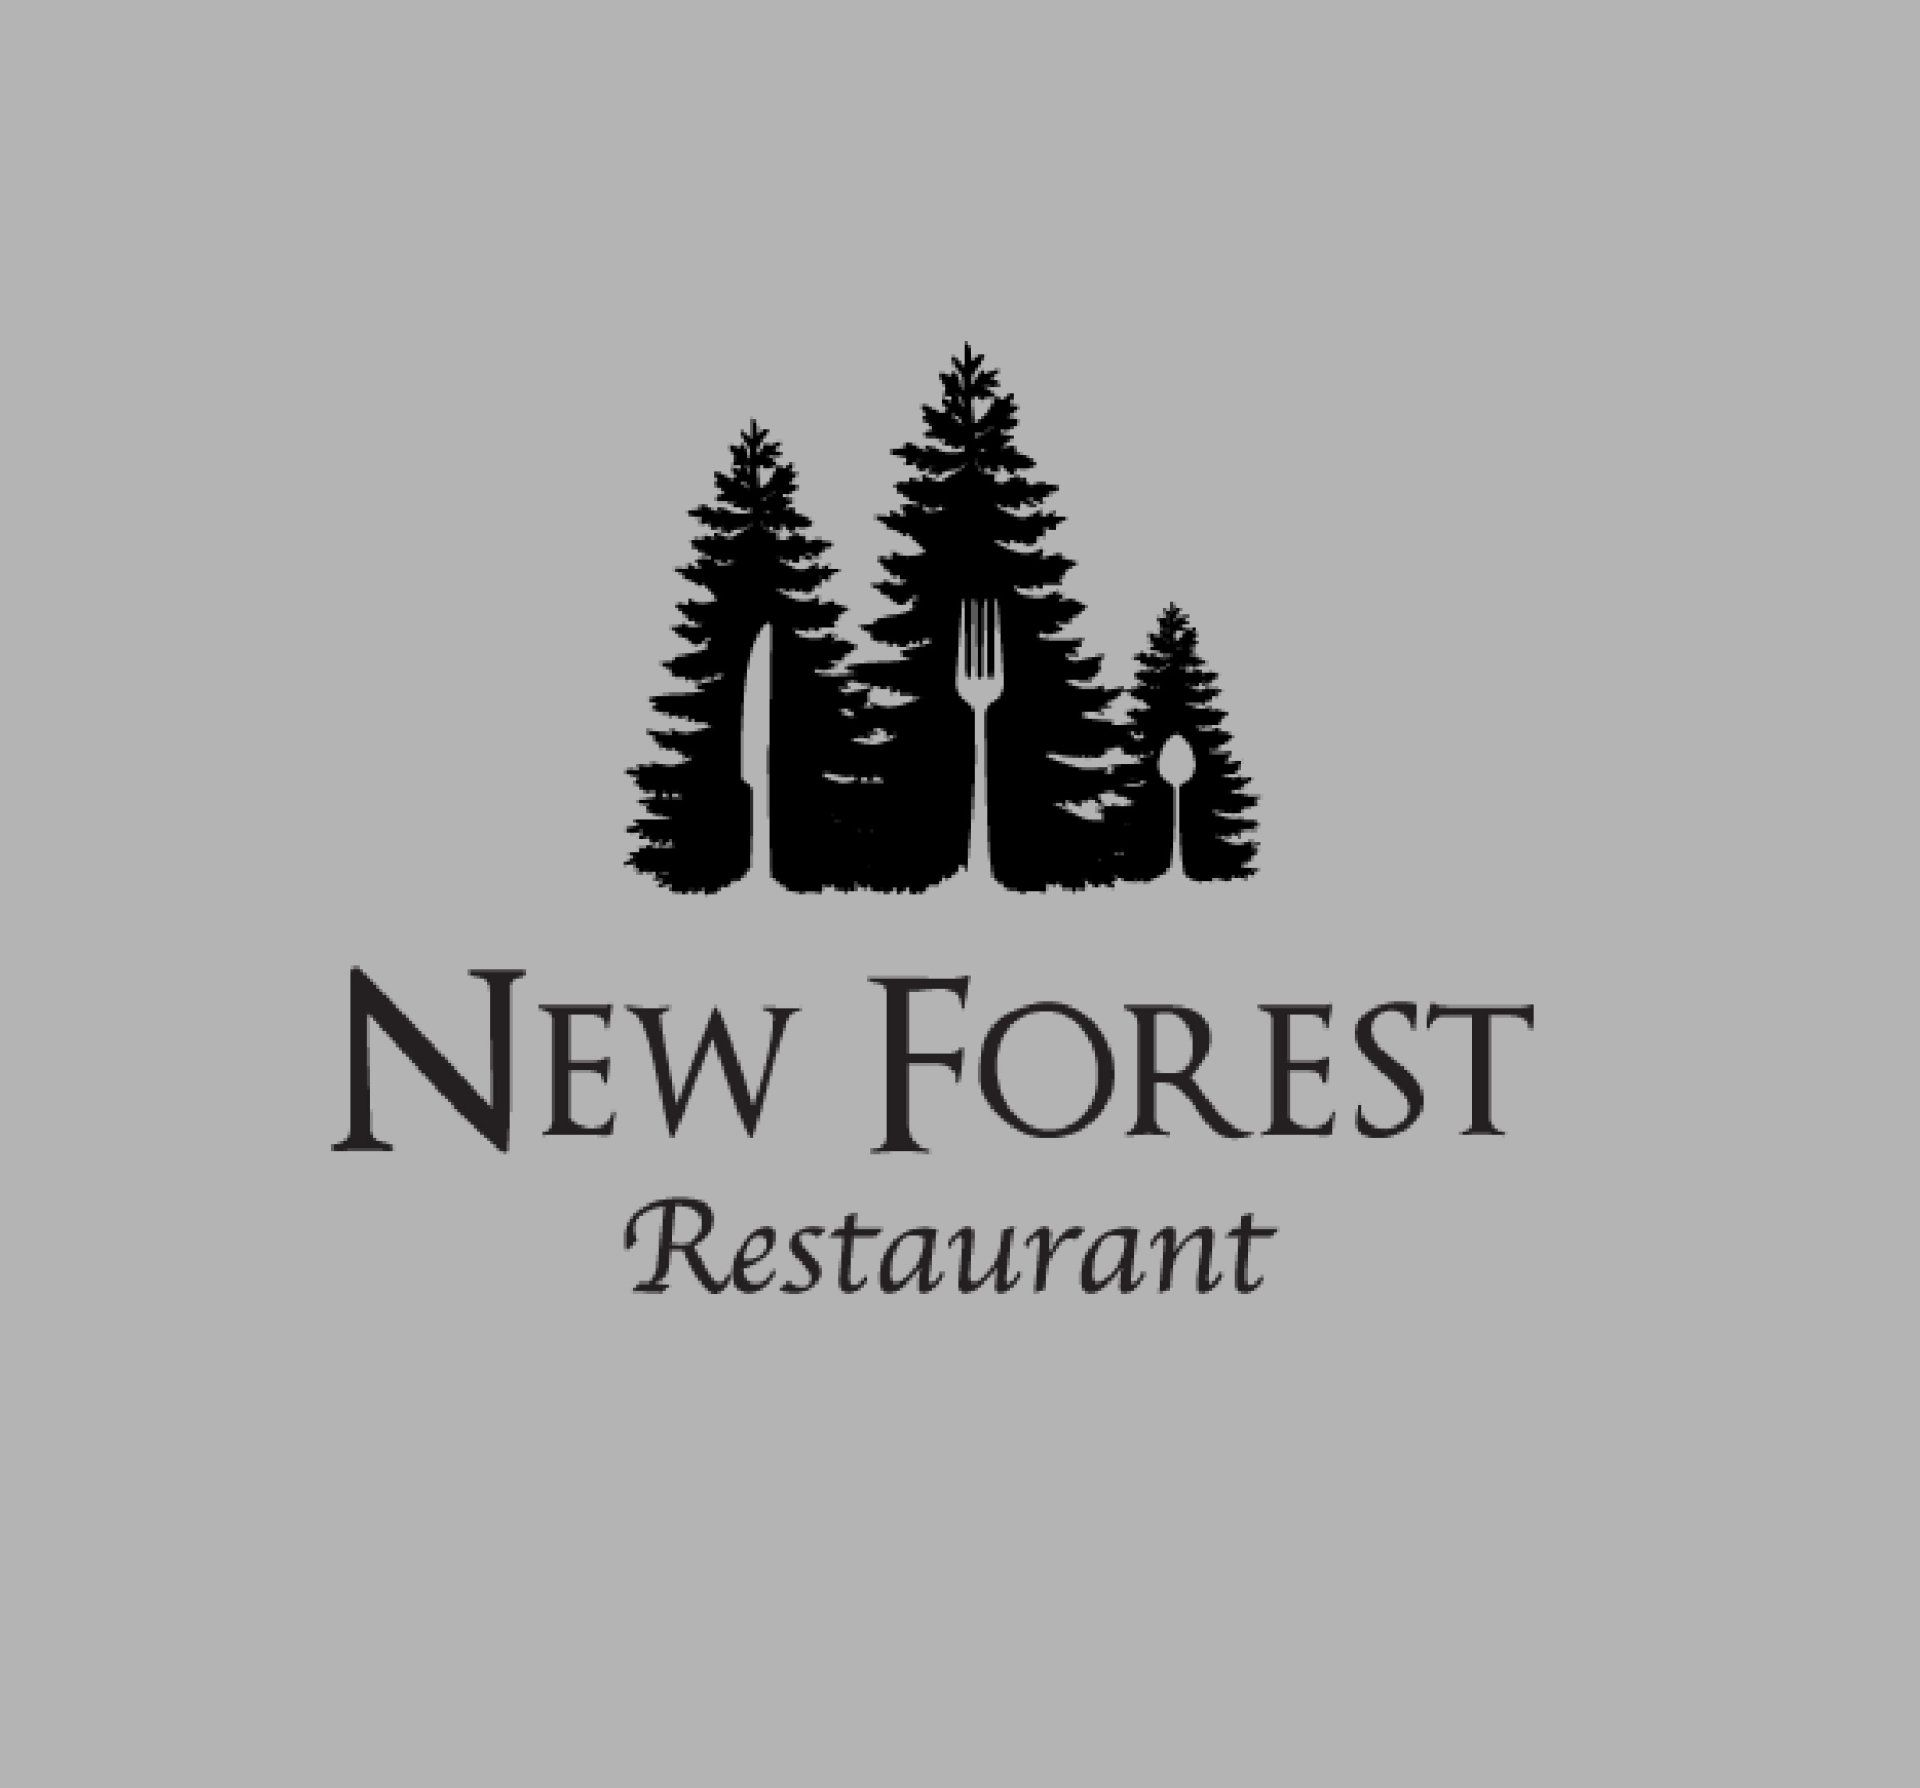 New forest restaurant b o c graphic design logos new forest restaurant buycottarizona Image collections